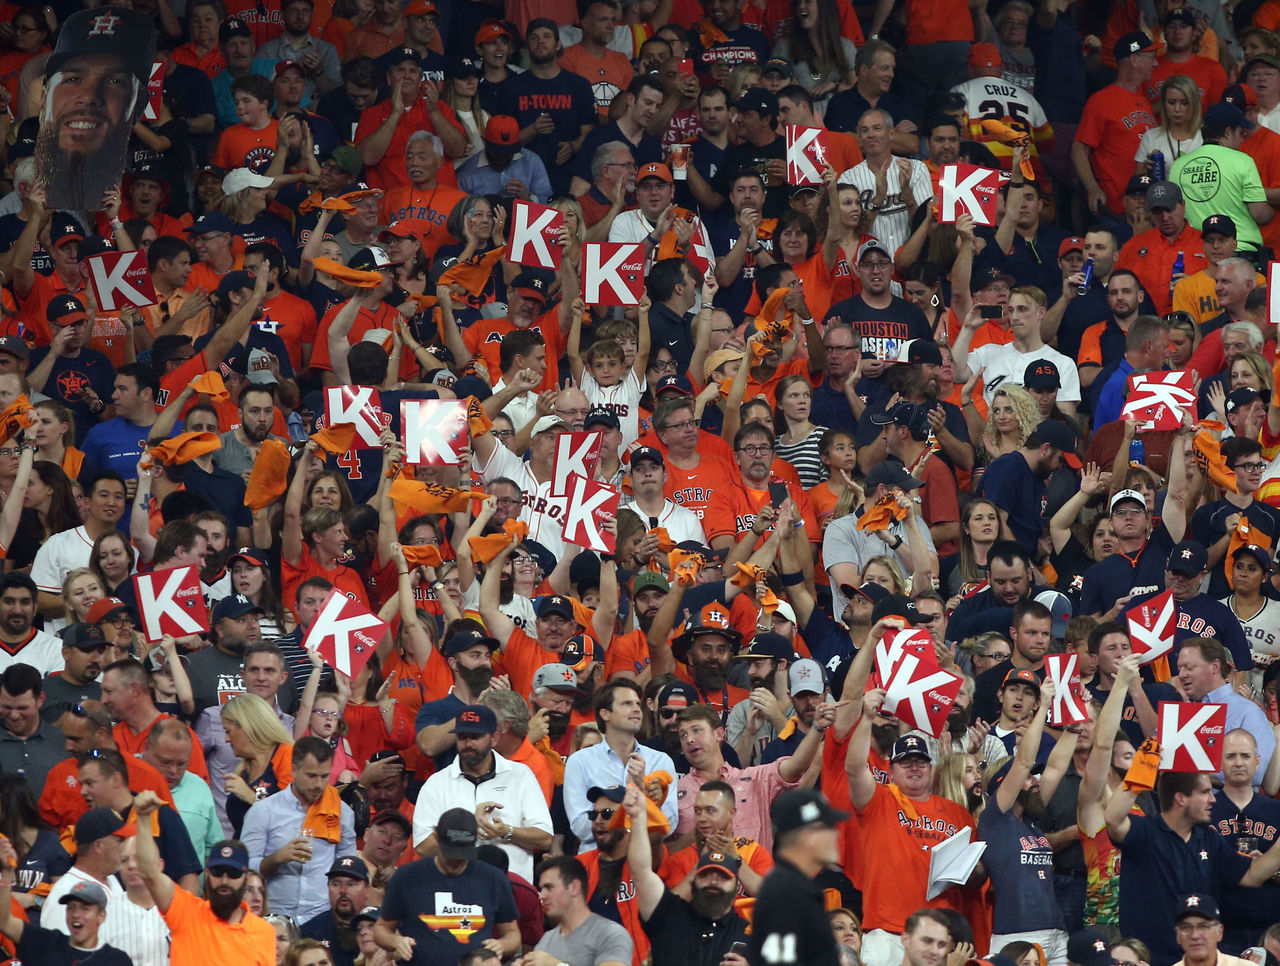 Cropped 2017 10 14t003739z 115723801 nocid rtrmadp 3 mlb alcs new york yankees at houston astros